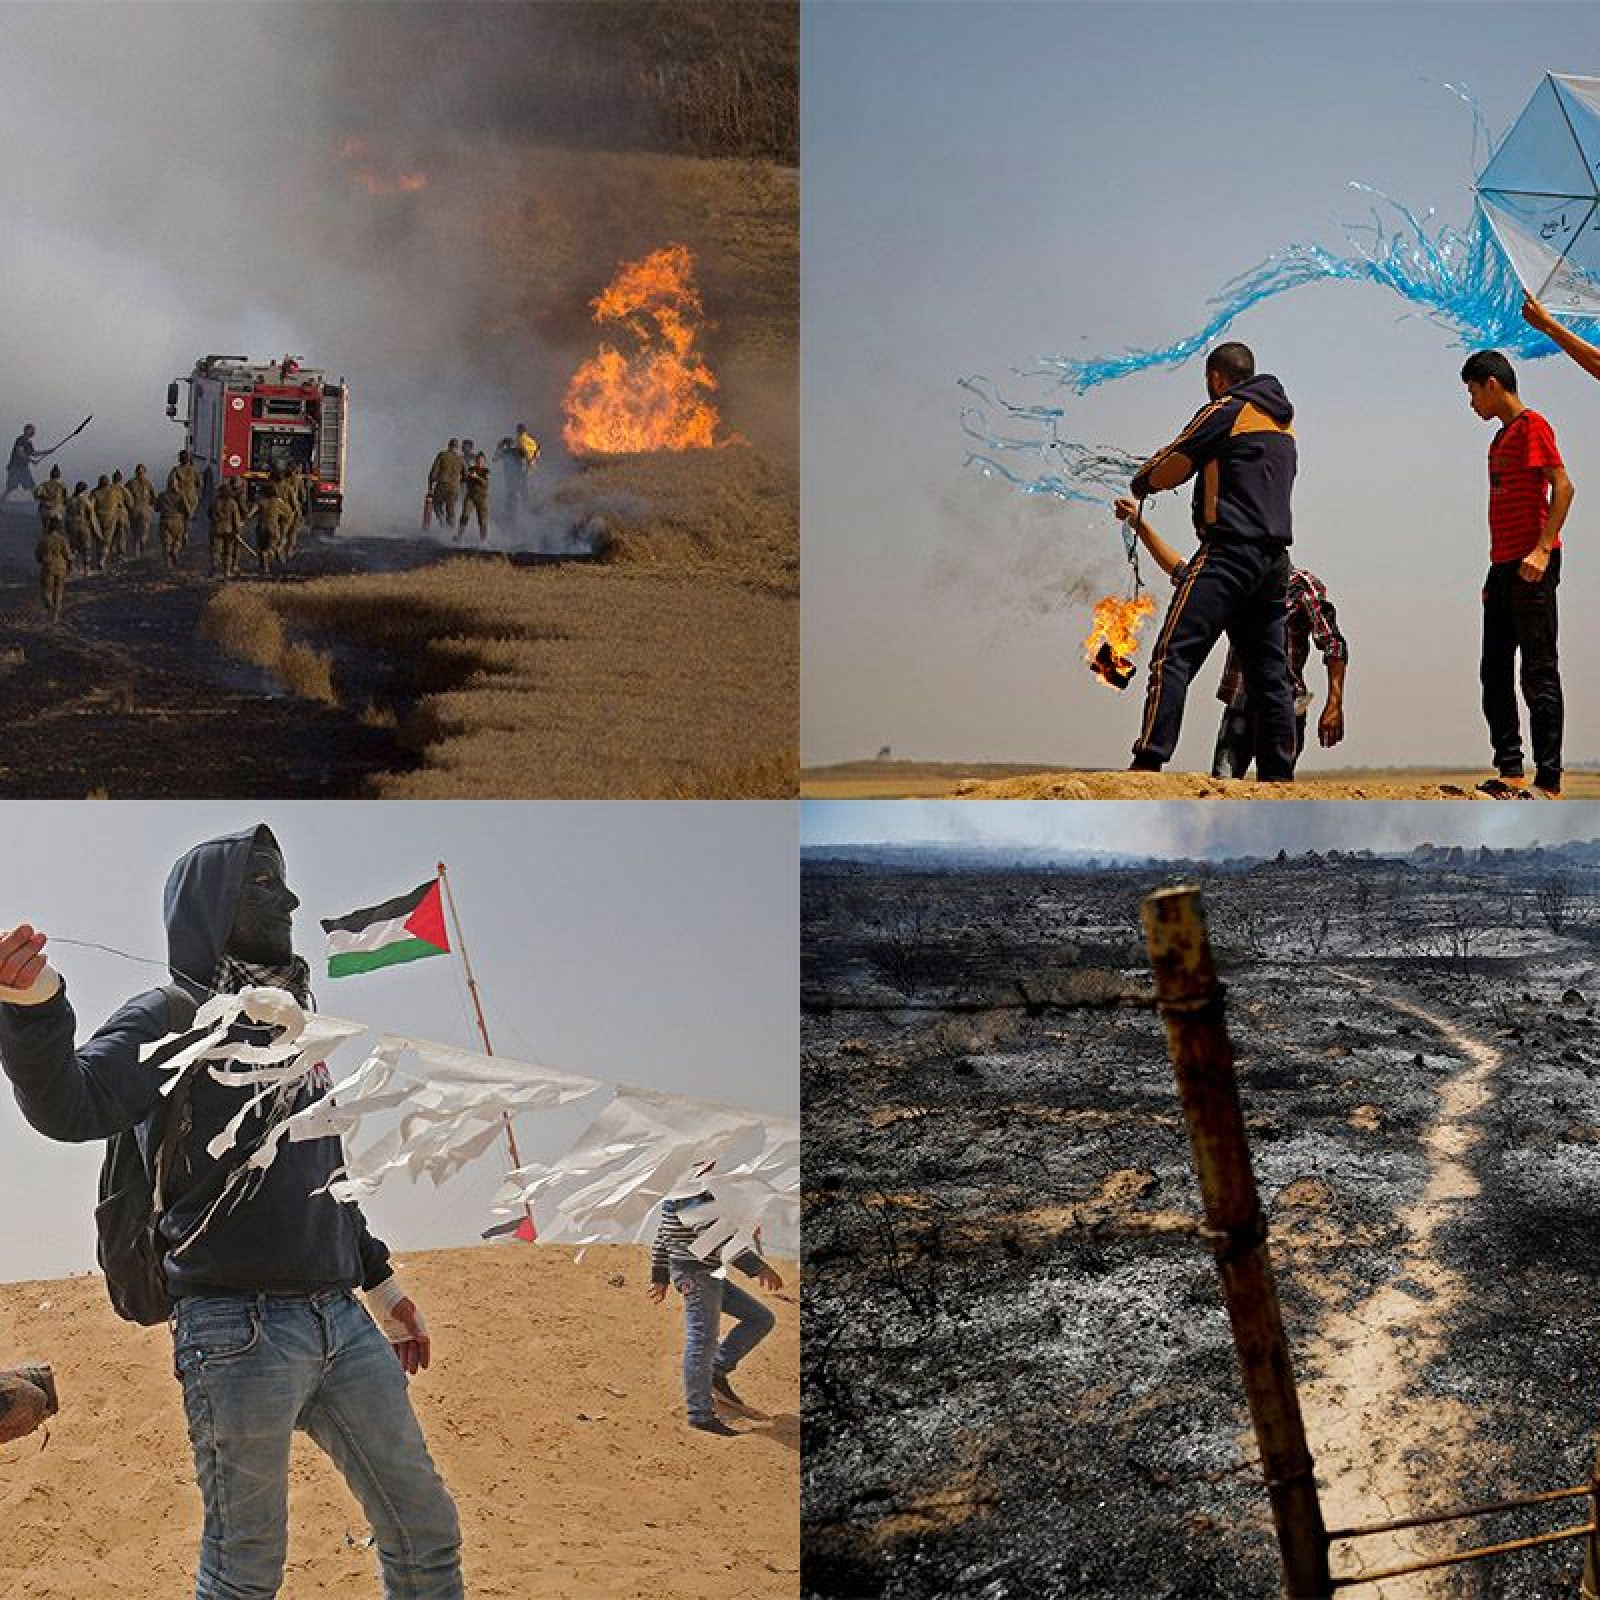 Palestinians Use Burning Kites As Weapons Against Israel on Gaza Border